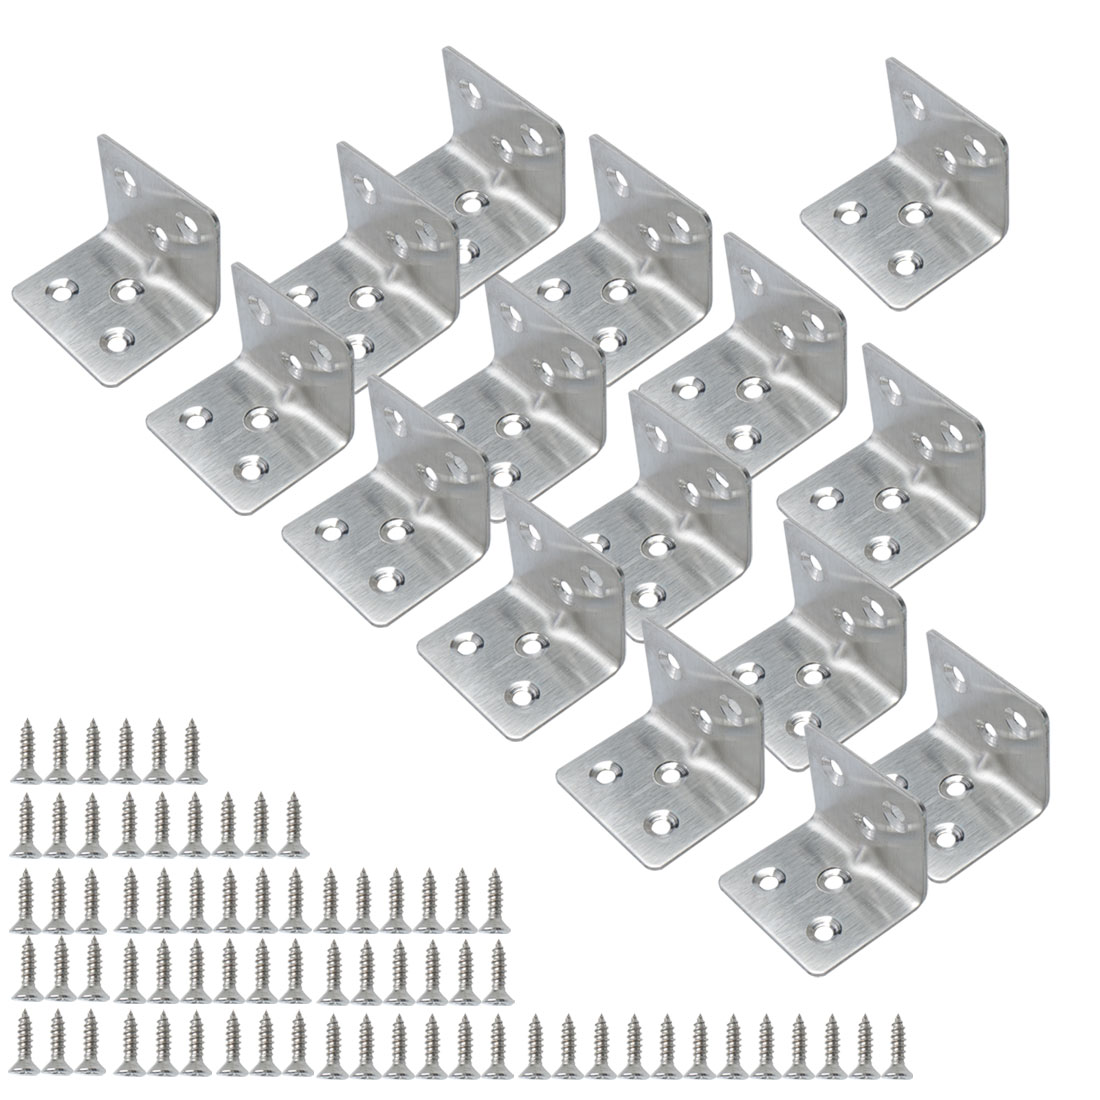 Angle Bracket Stainless Steel Brace Connection Fastener w Screw 40x40mm, 16pcs